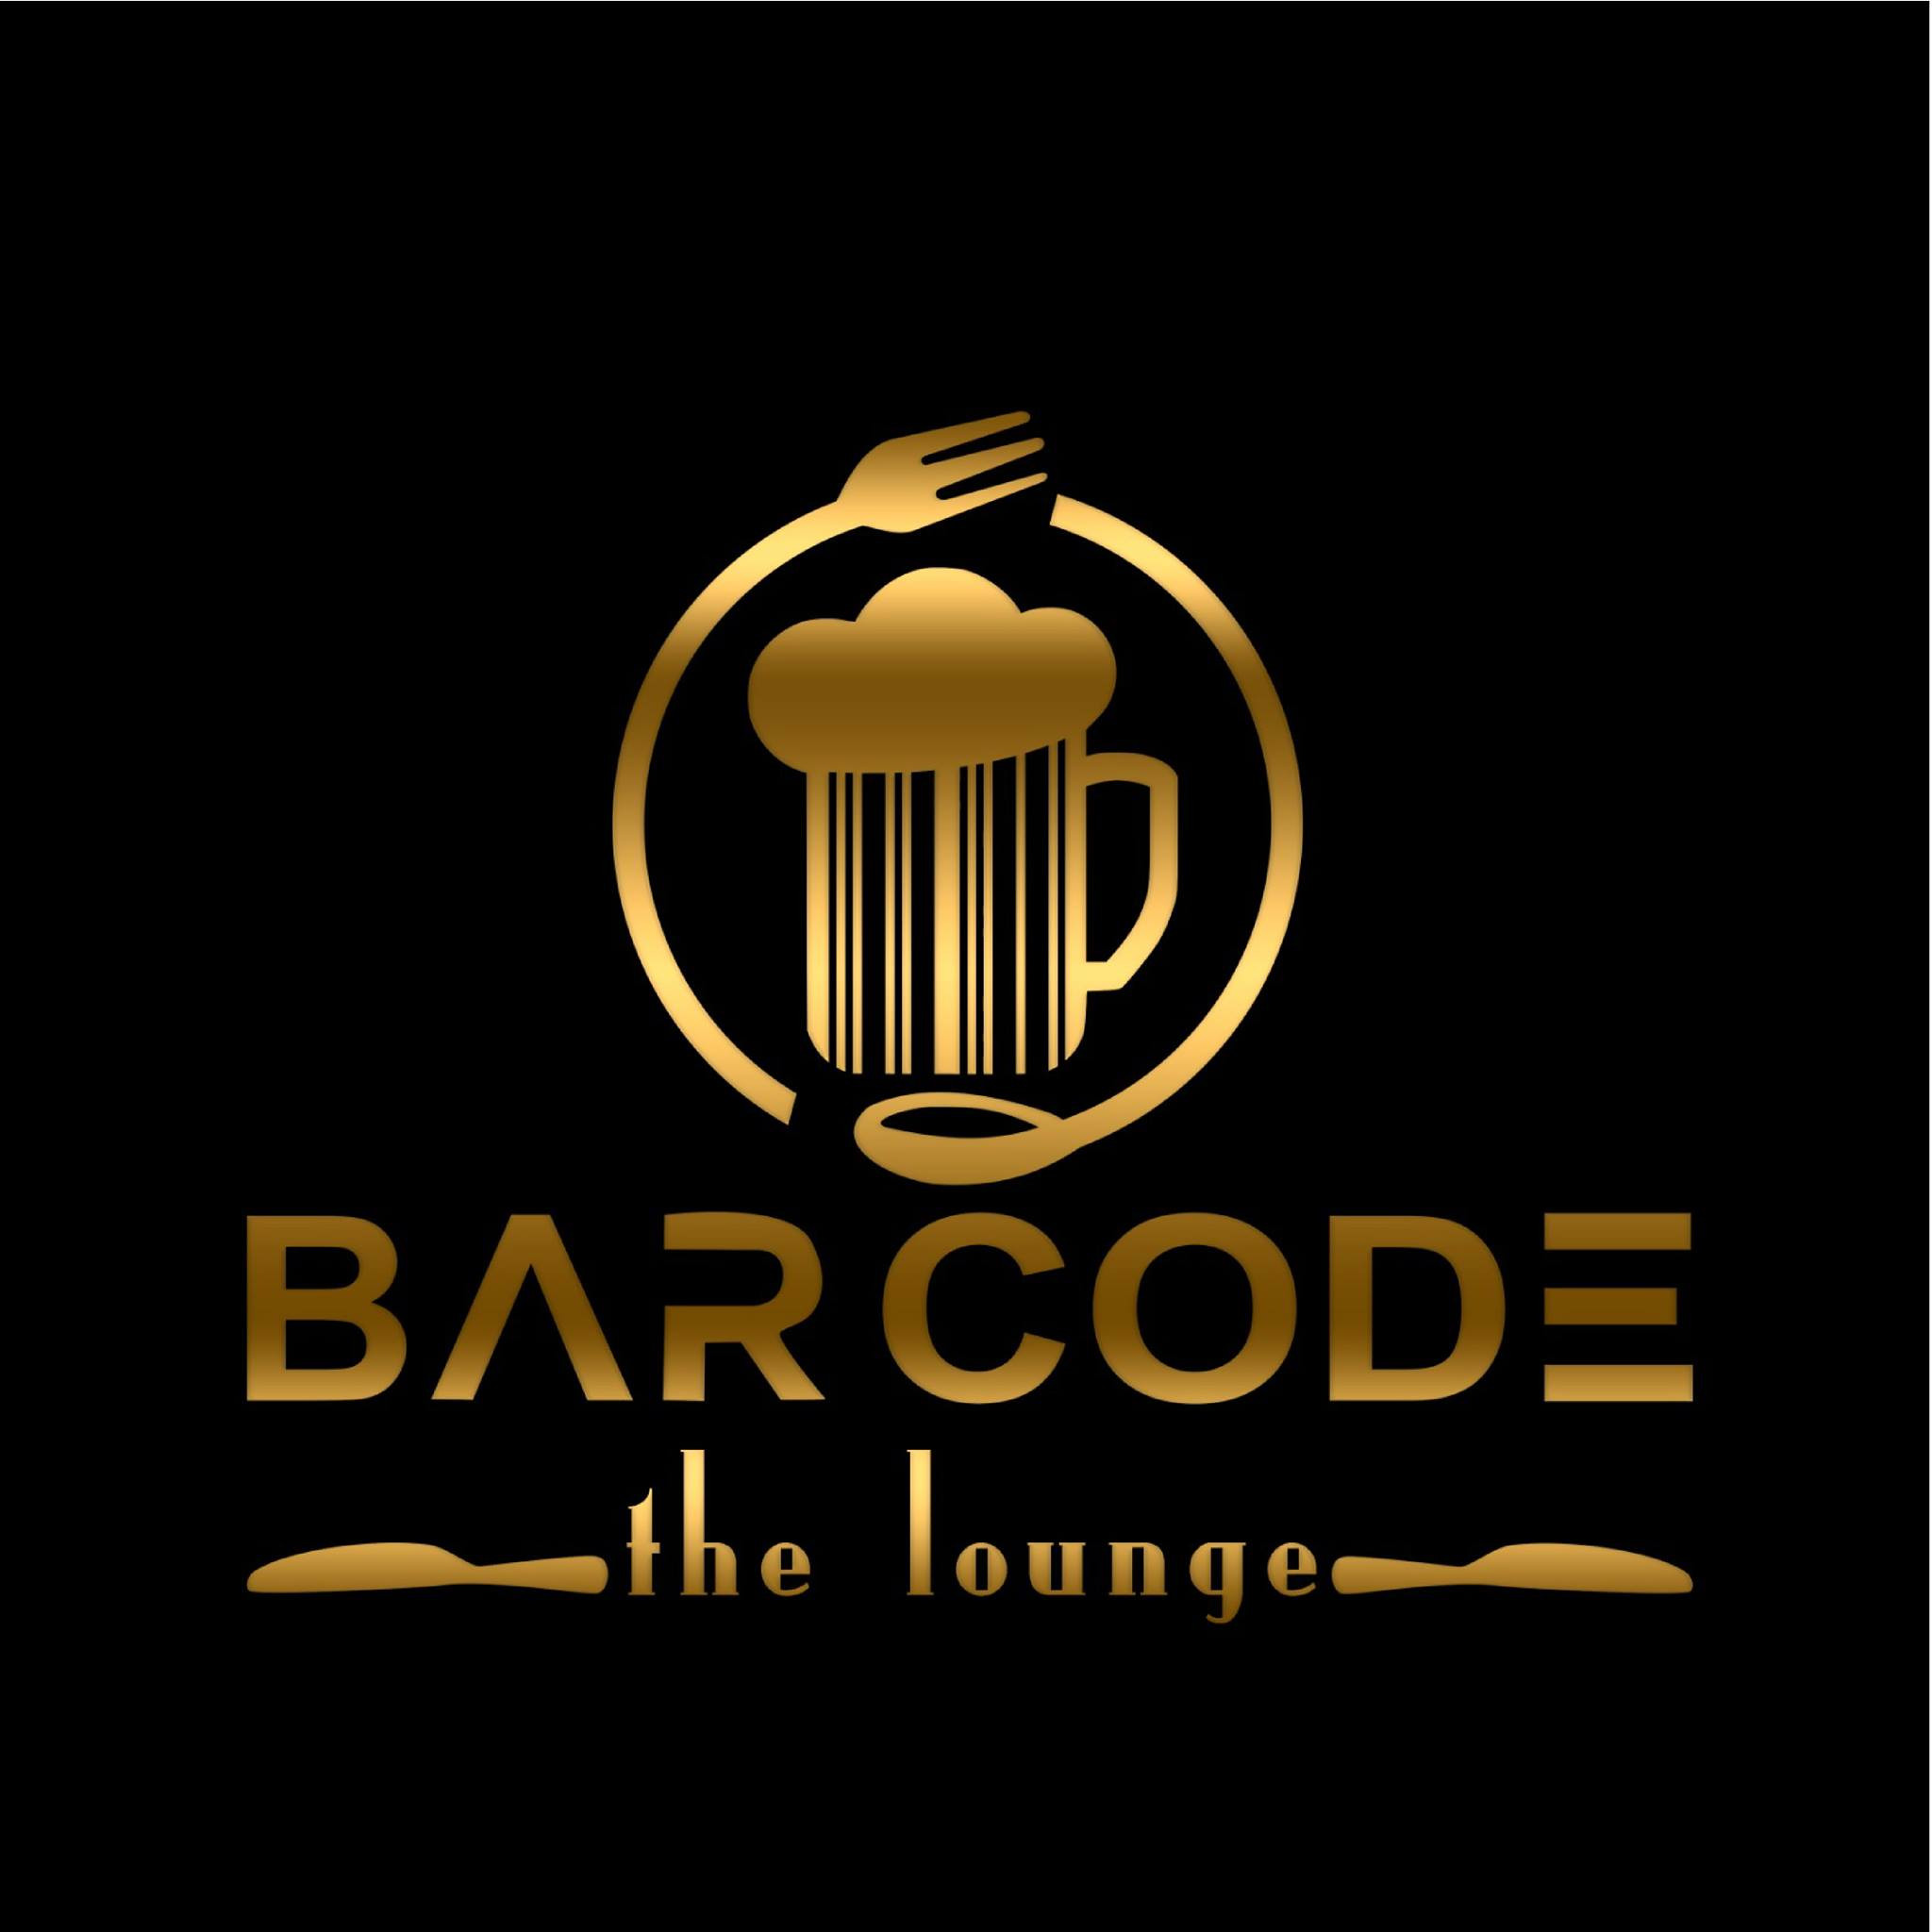 BARCODE THE LOUNGE